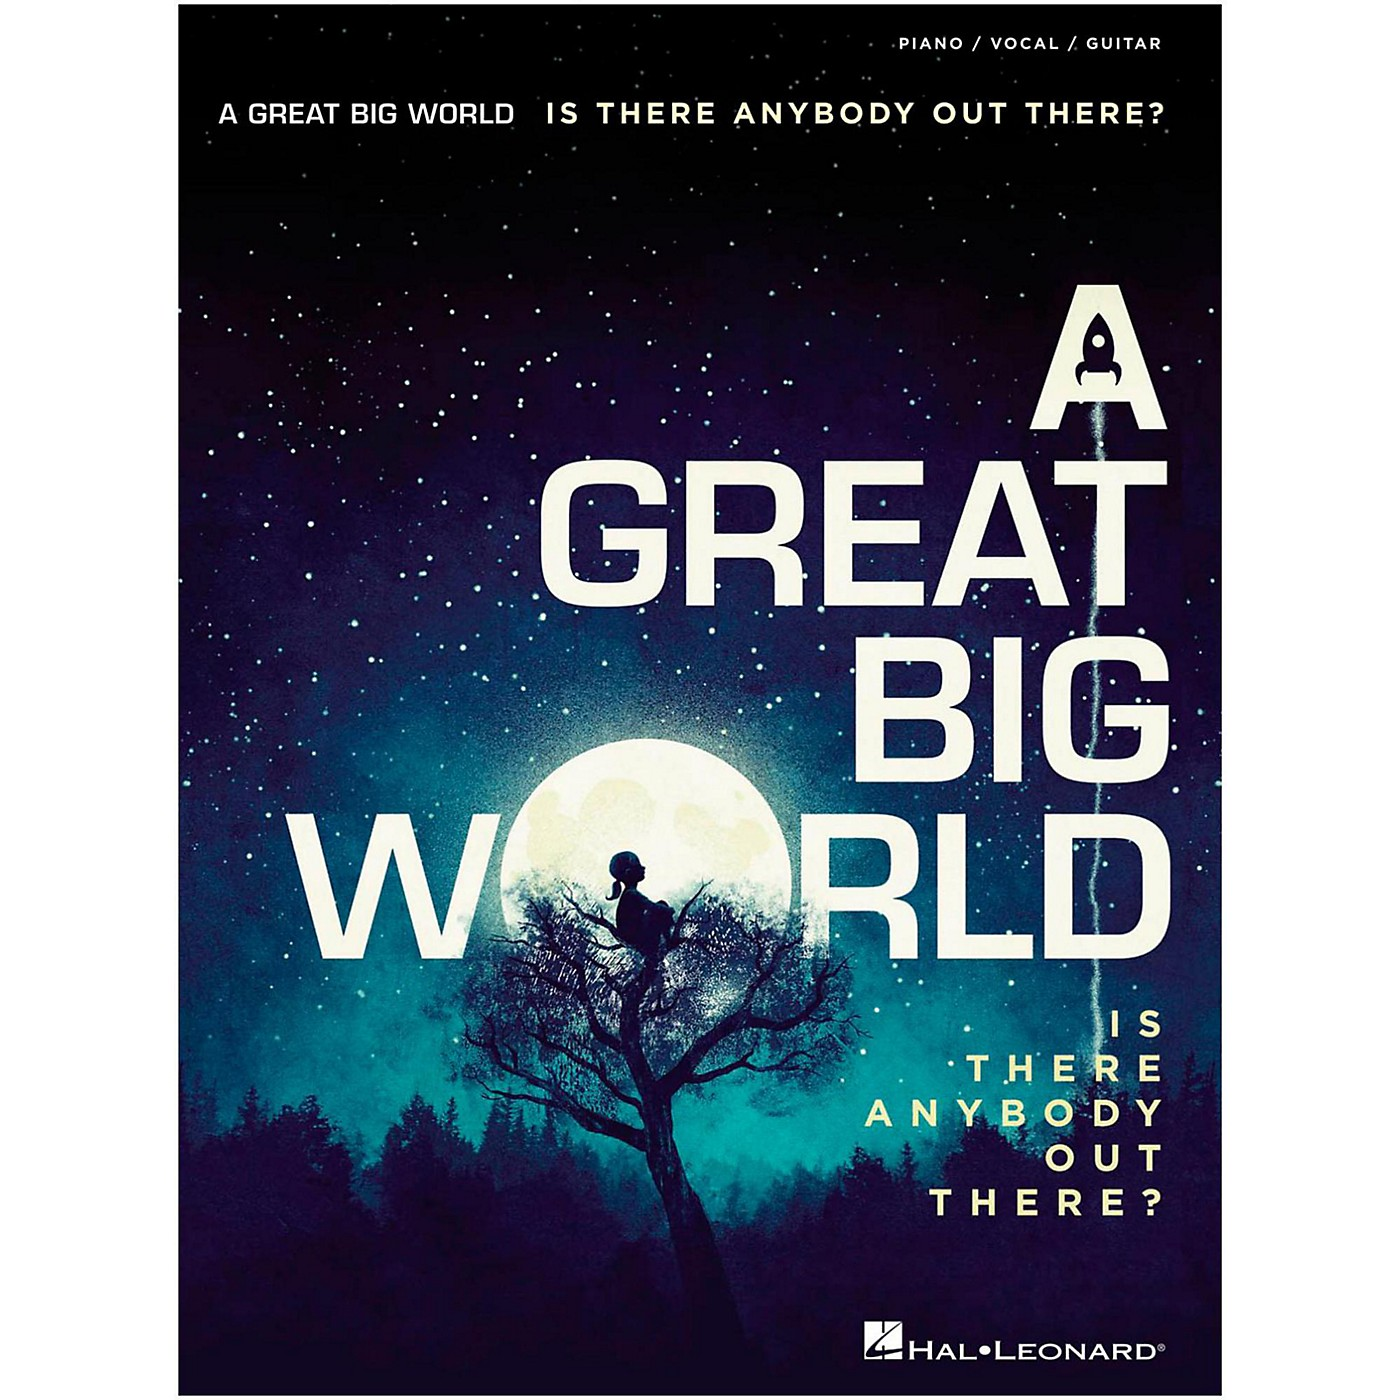 Hal Leonard A Great Big World - Is There Anybody Out There? For Piano/Vocal/Guitar thumbnail